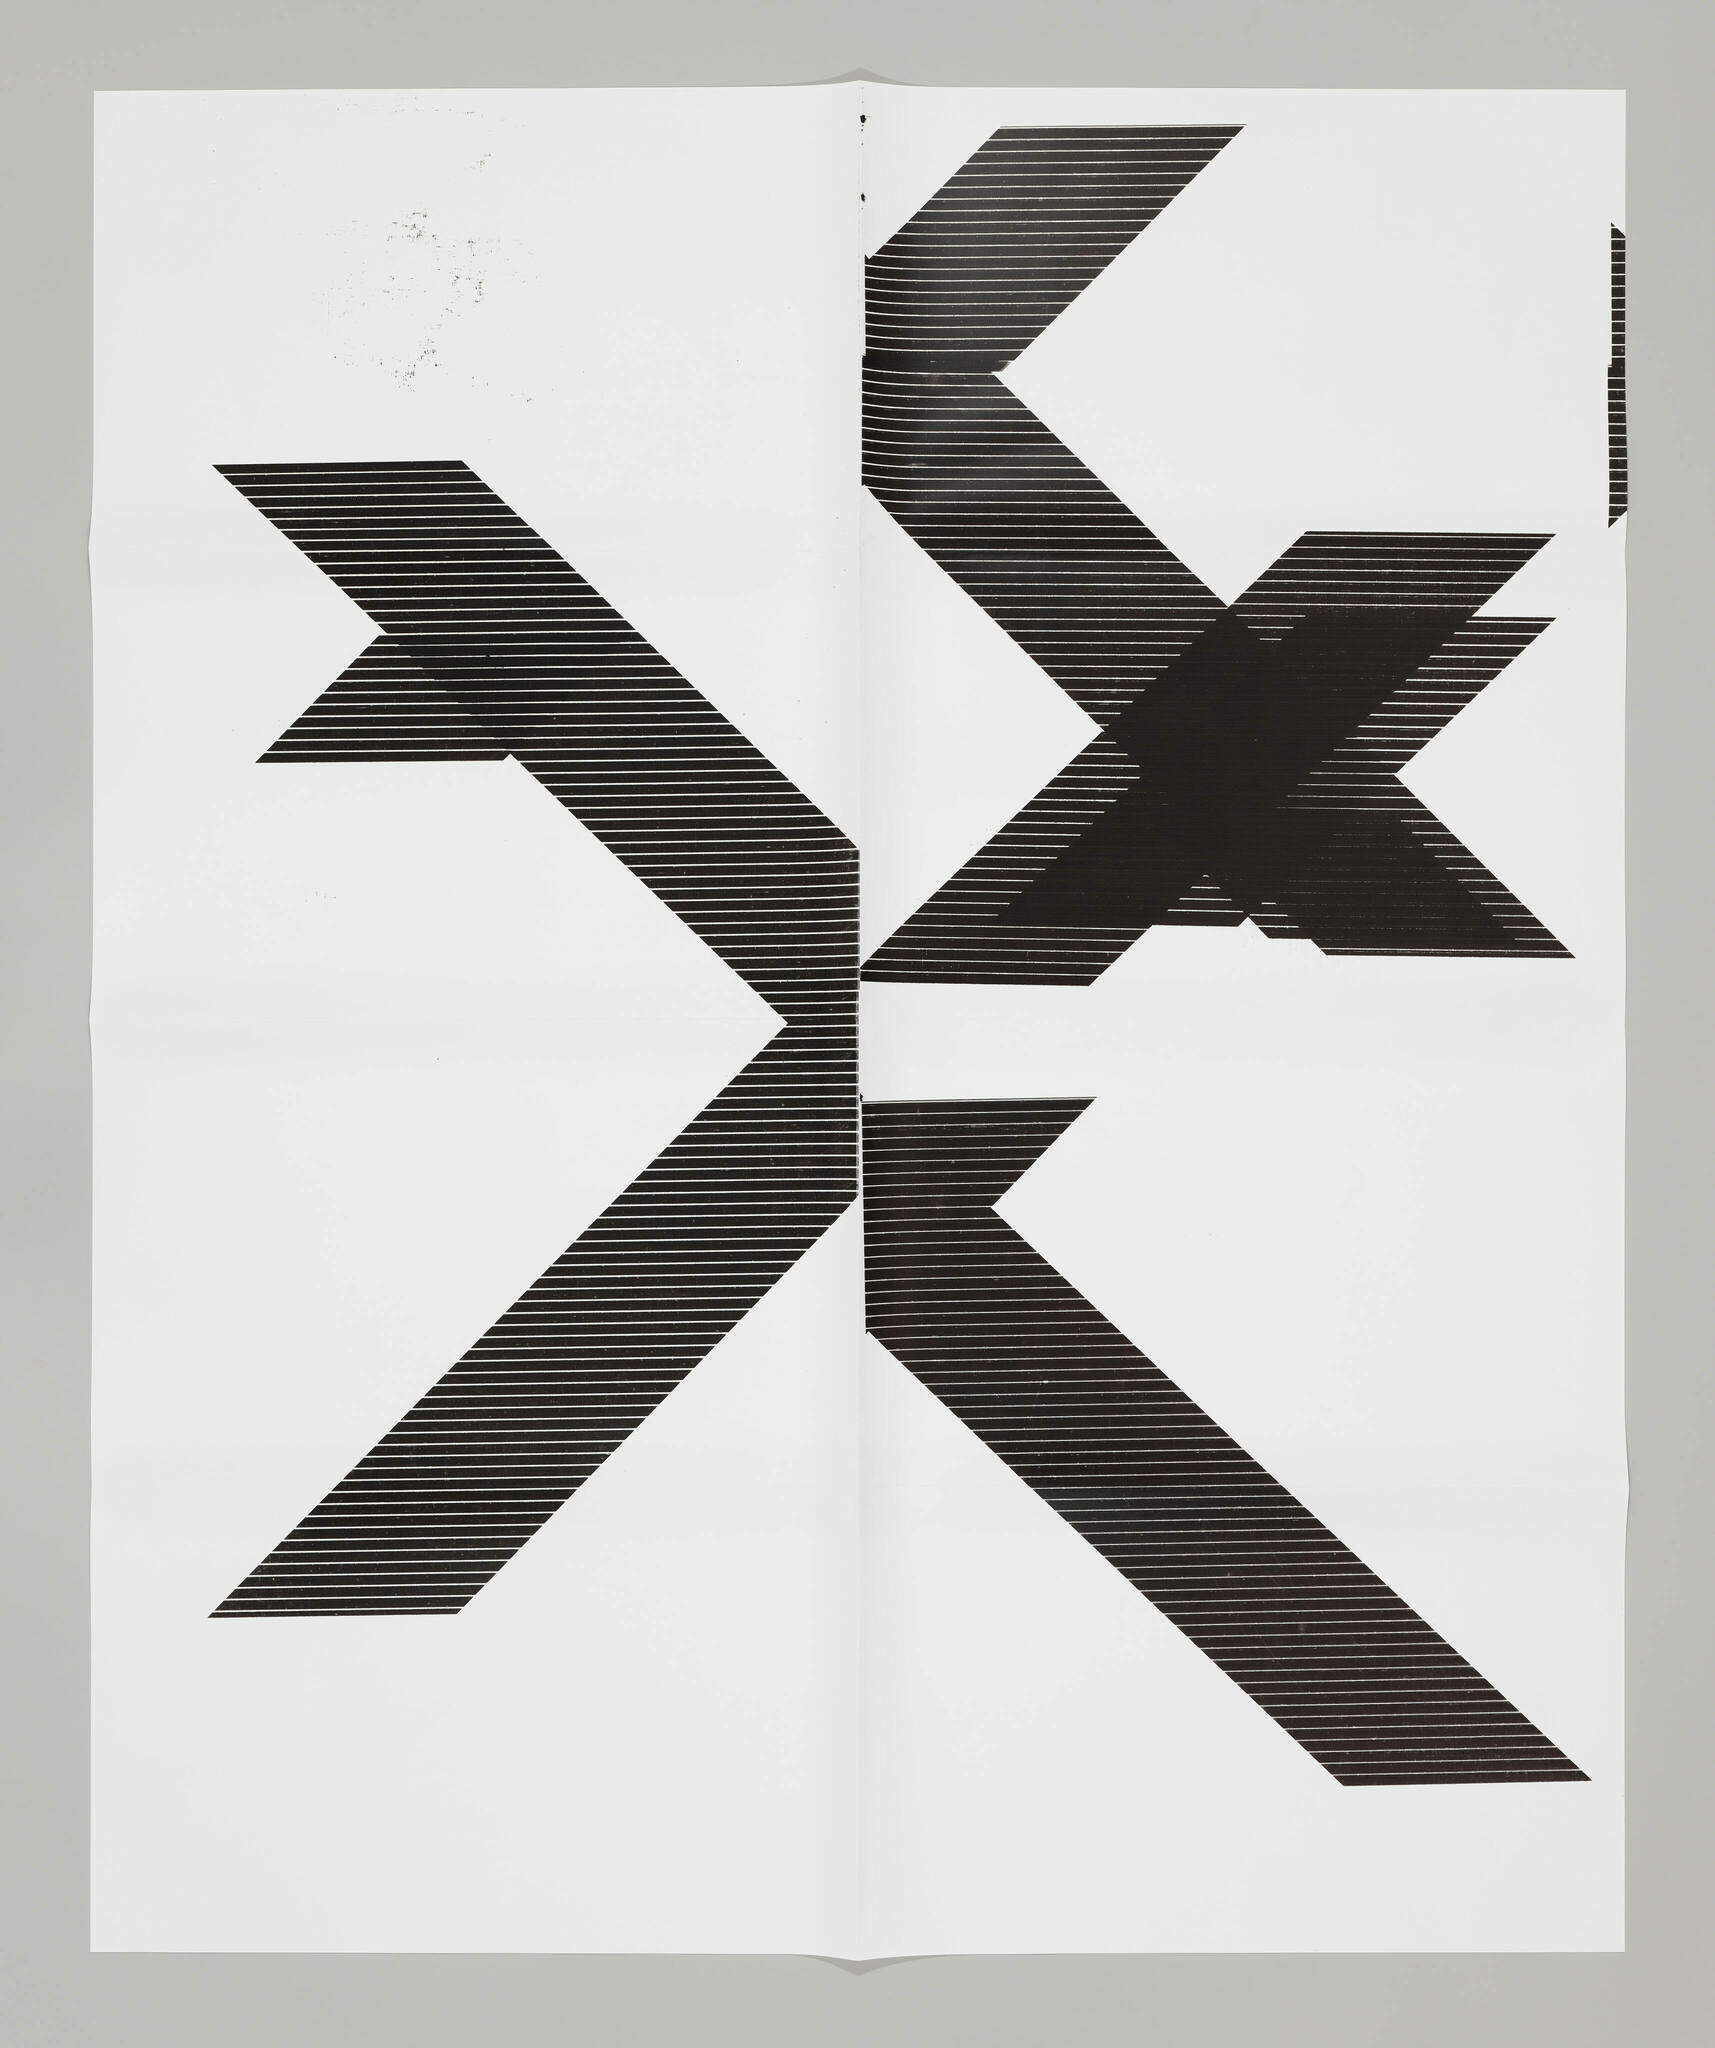 """Fragments of black letters """"X"""" scattered across white background."""